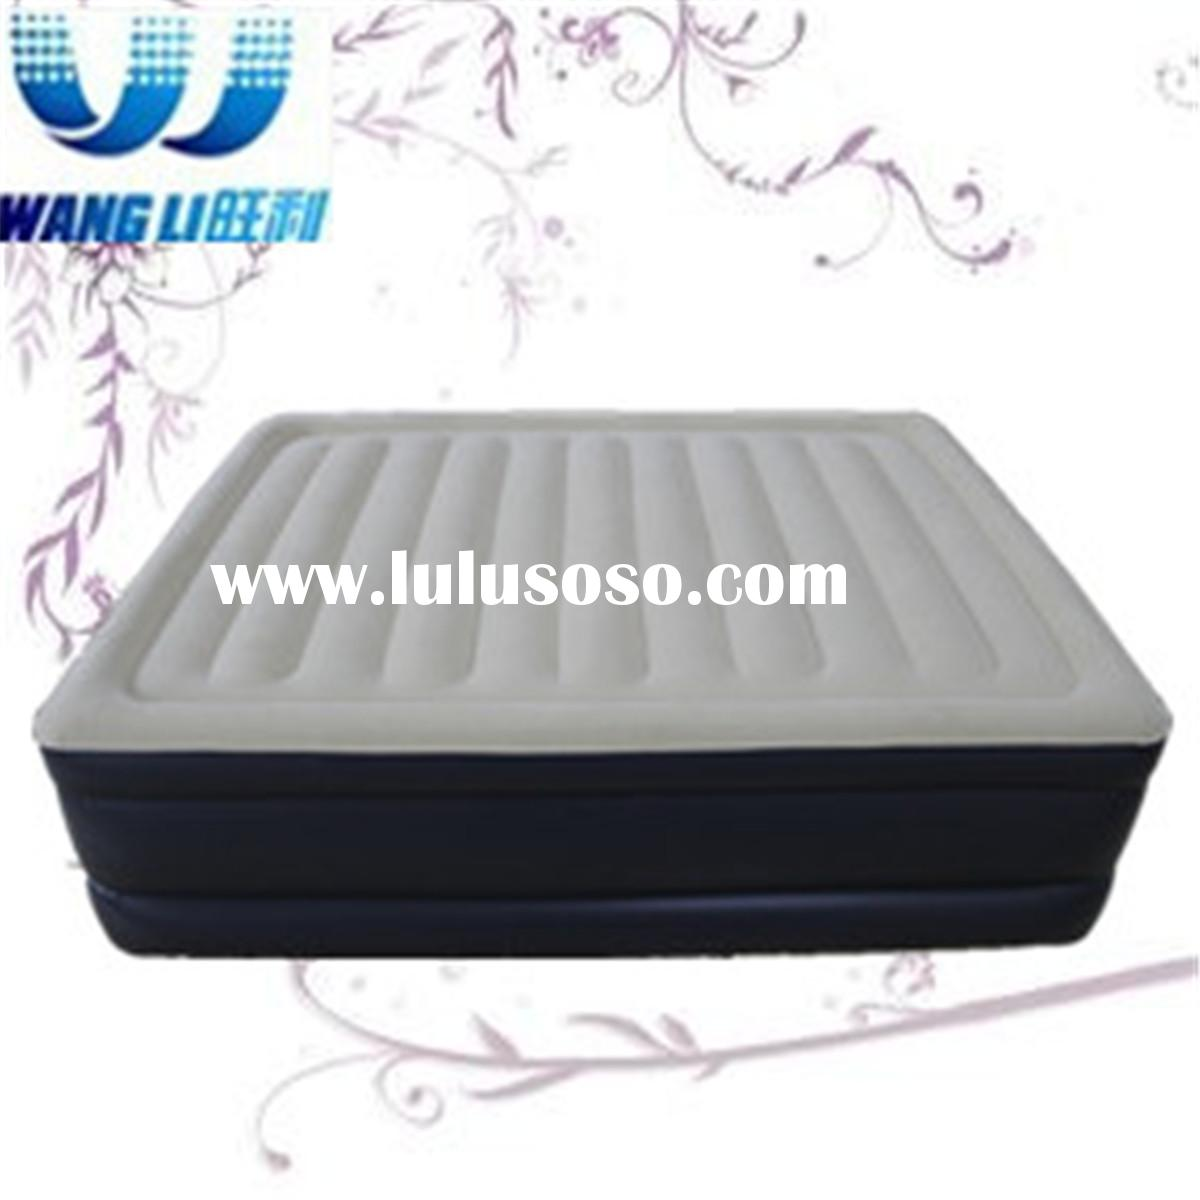 Soft Queen Air mattress with built-in electric pump